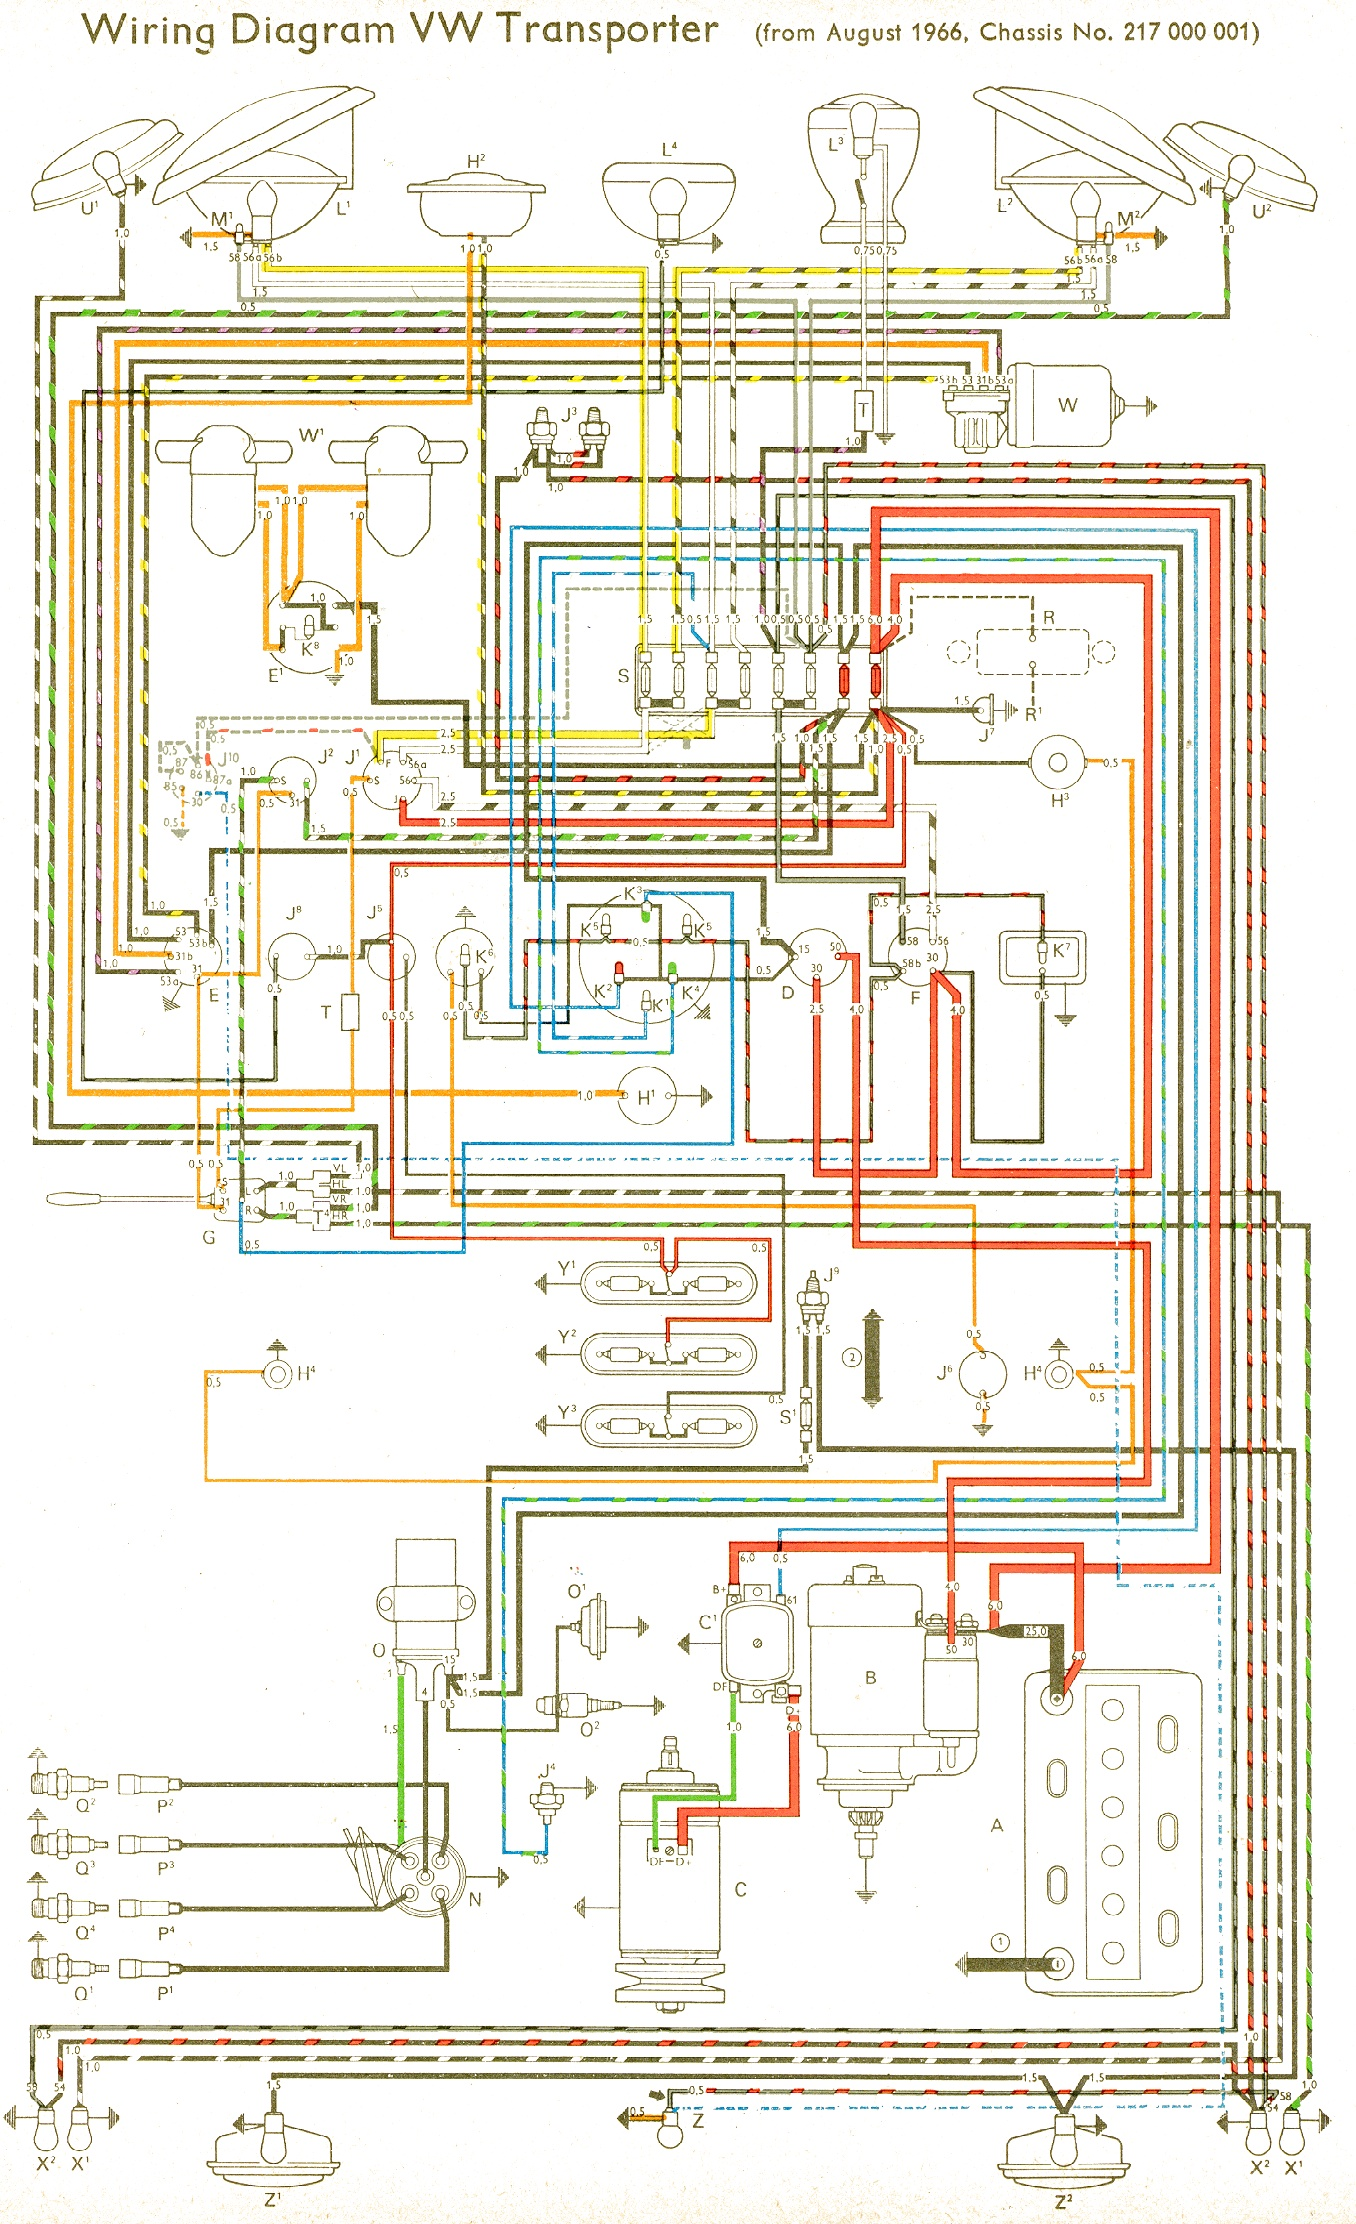 Vw Wiring Diagrams 1973 VW Beetle Engine Diagram 74 Vw Beetle Wiring Diagram